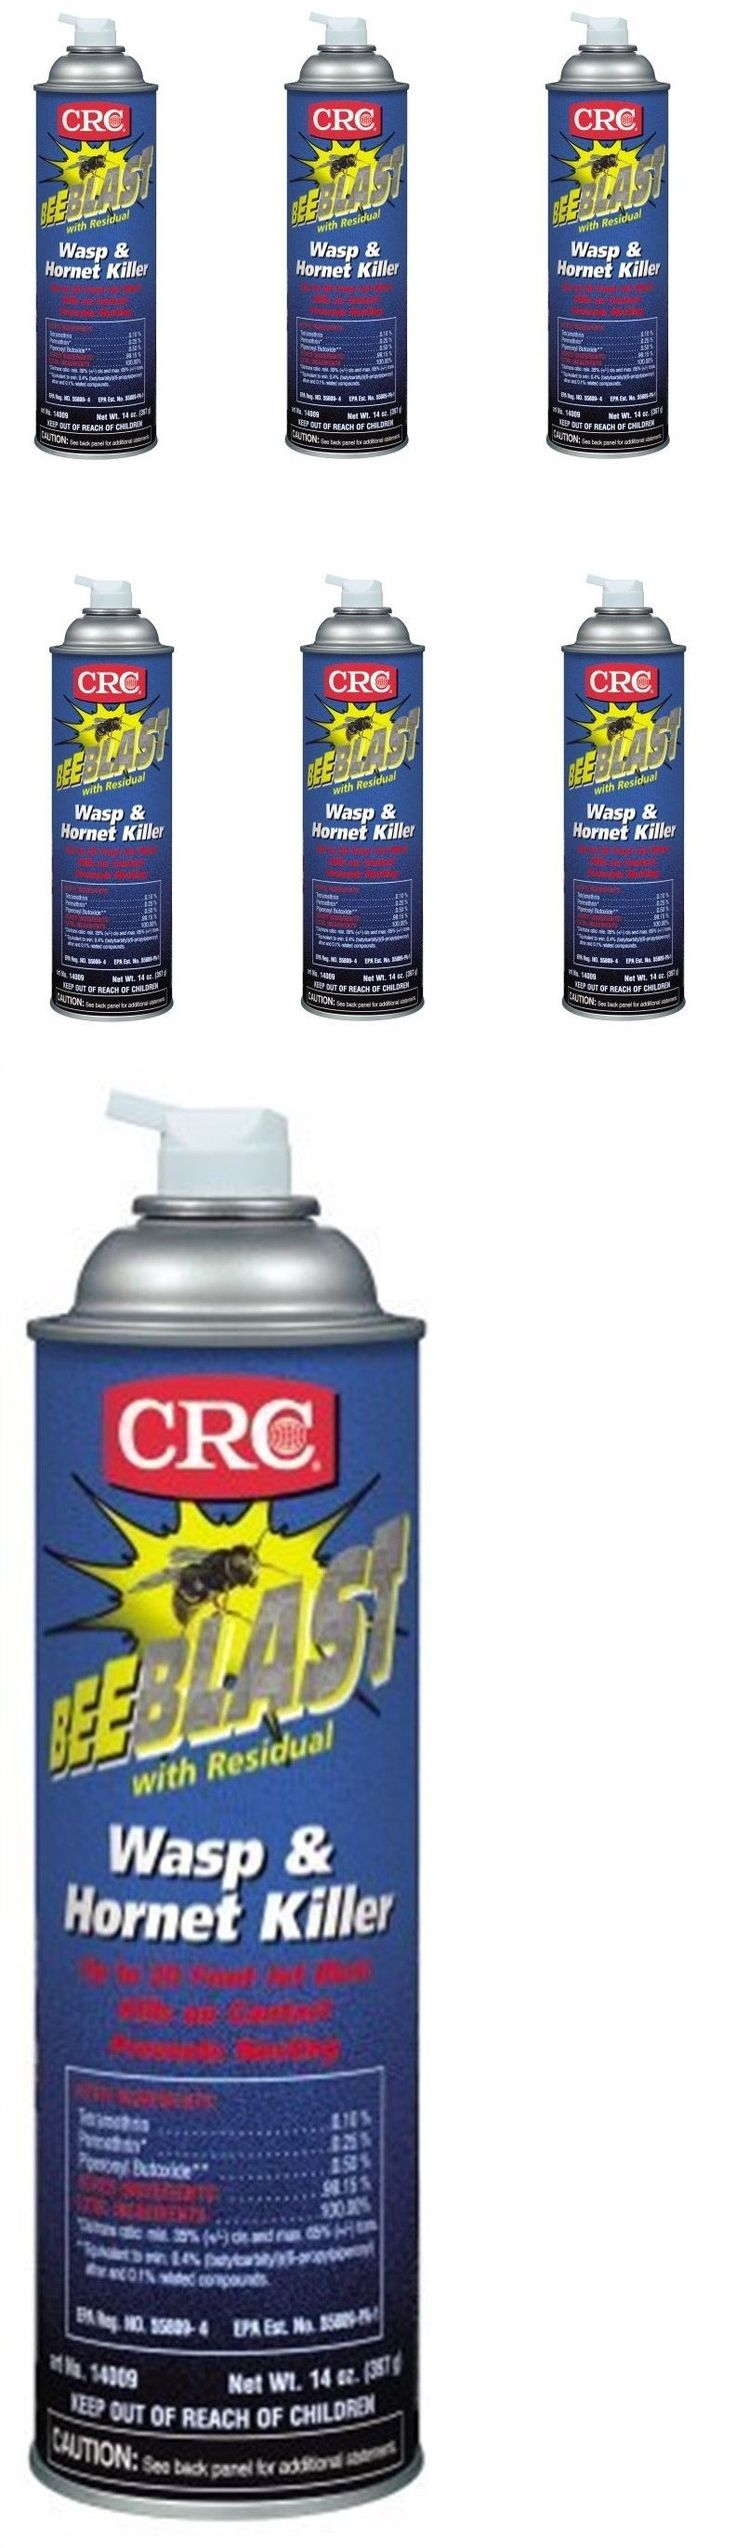 Insect Nets and Repellents 65965: Crc - Bee Blast W Residual Wasp And Hornet Killer Spray, Aerosol 20 Oz - 6 Pack -> BUY IT NOW ONLY: $61.53 on eBay!